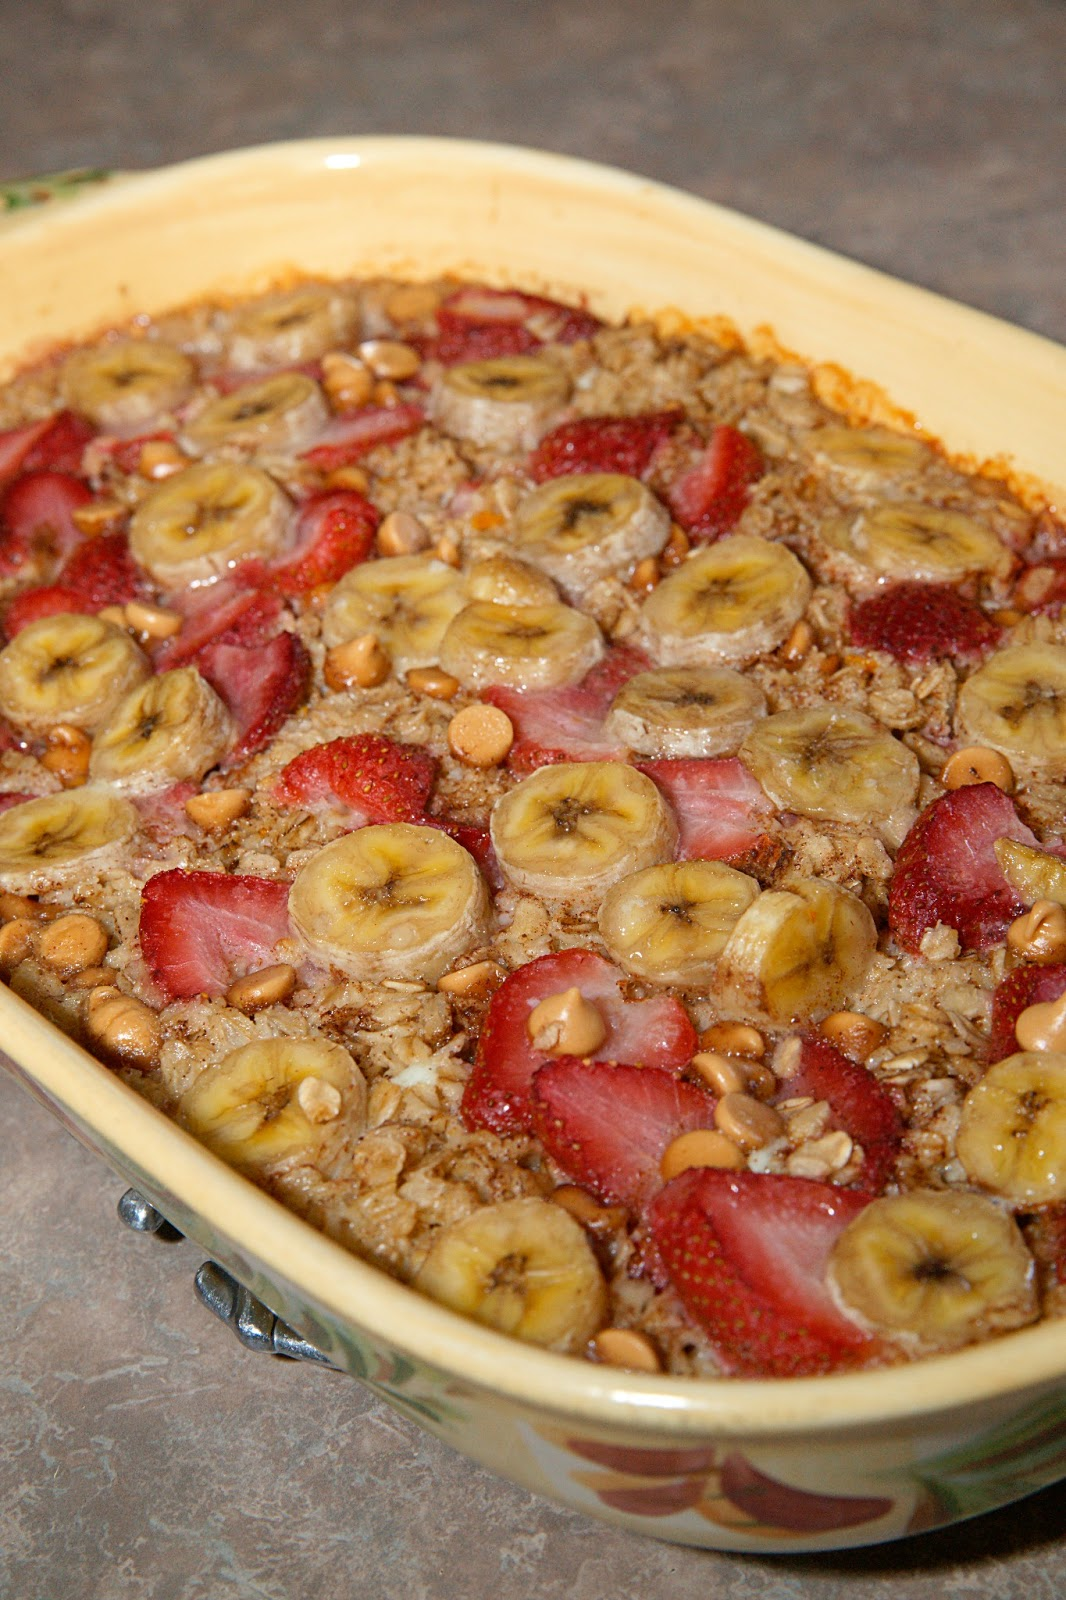 strawberry peanut butter banana baked oatmeal